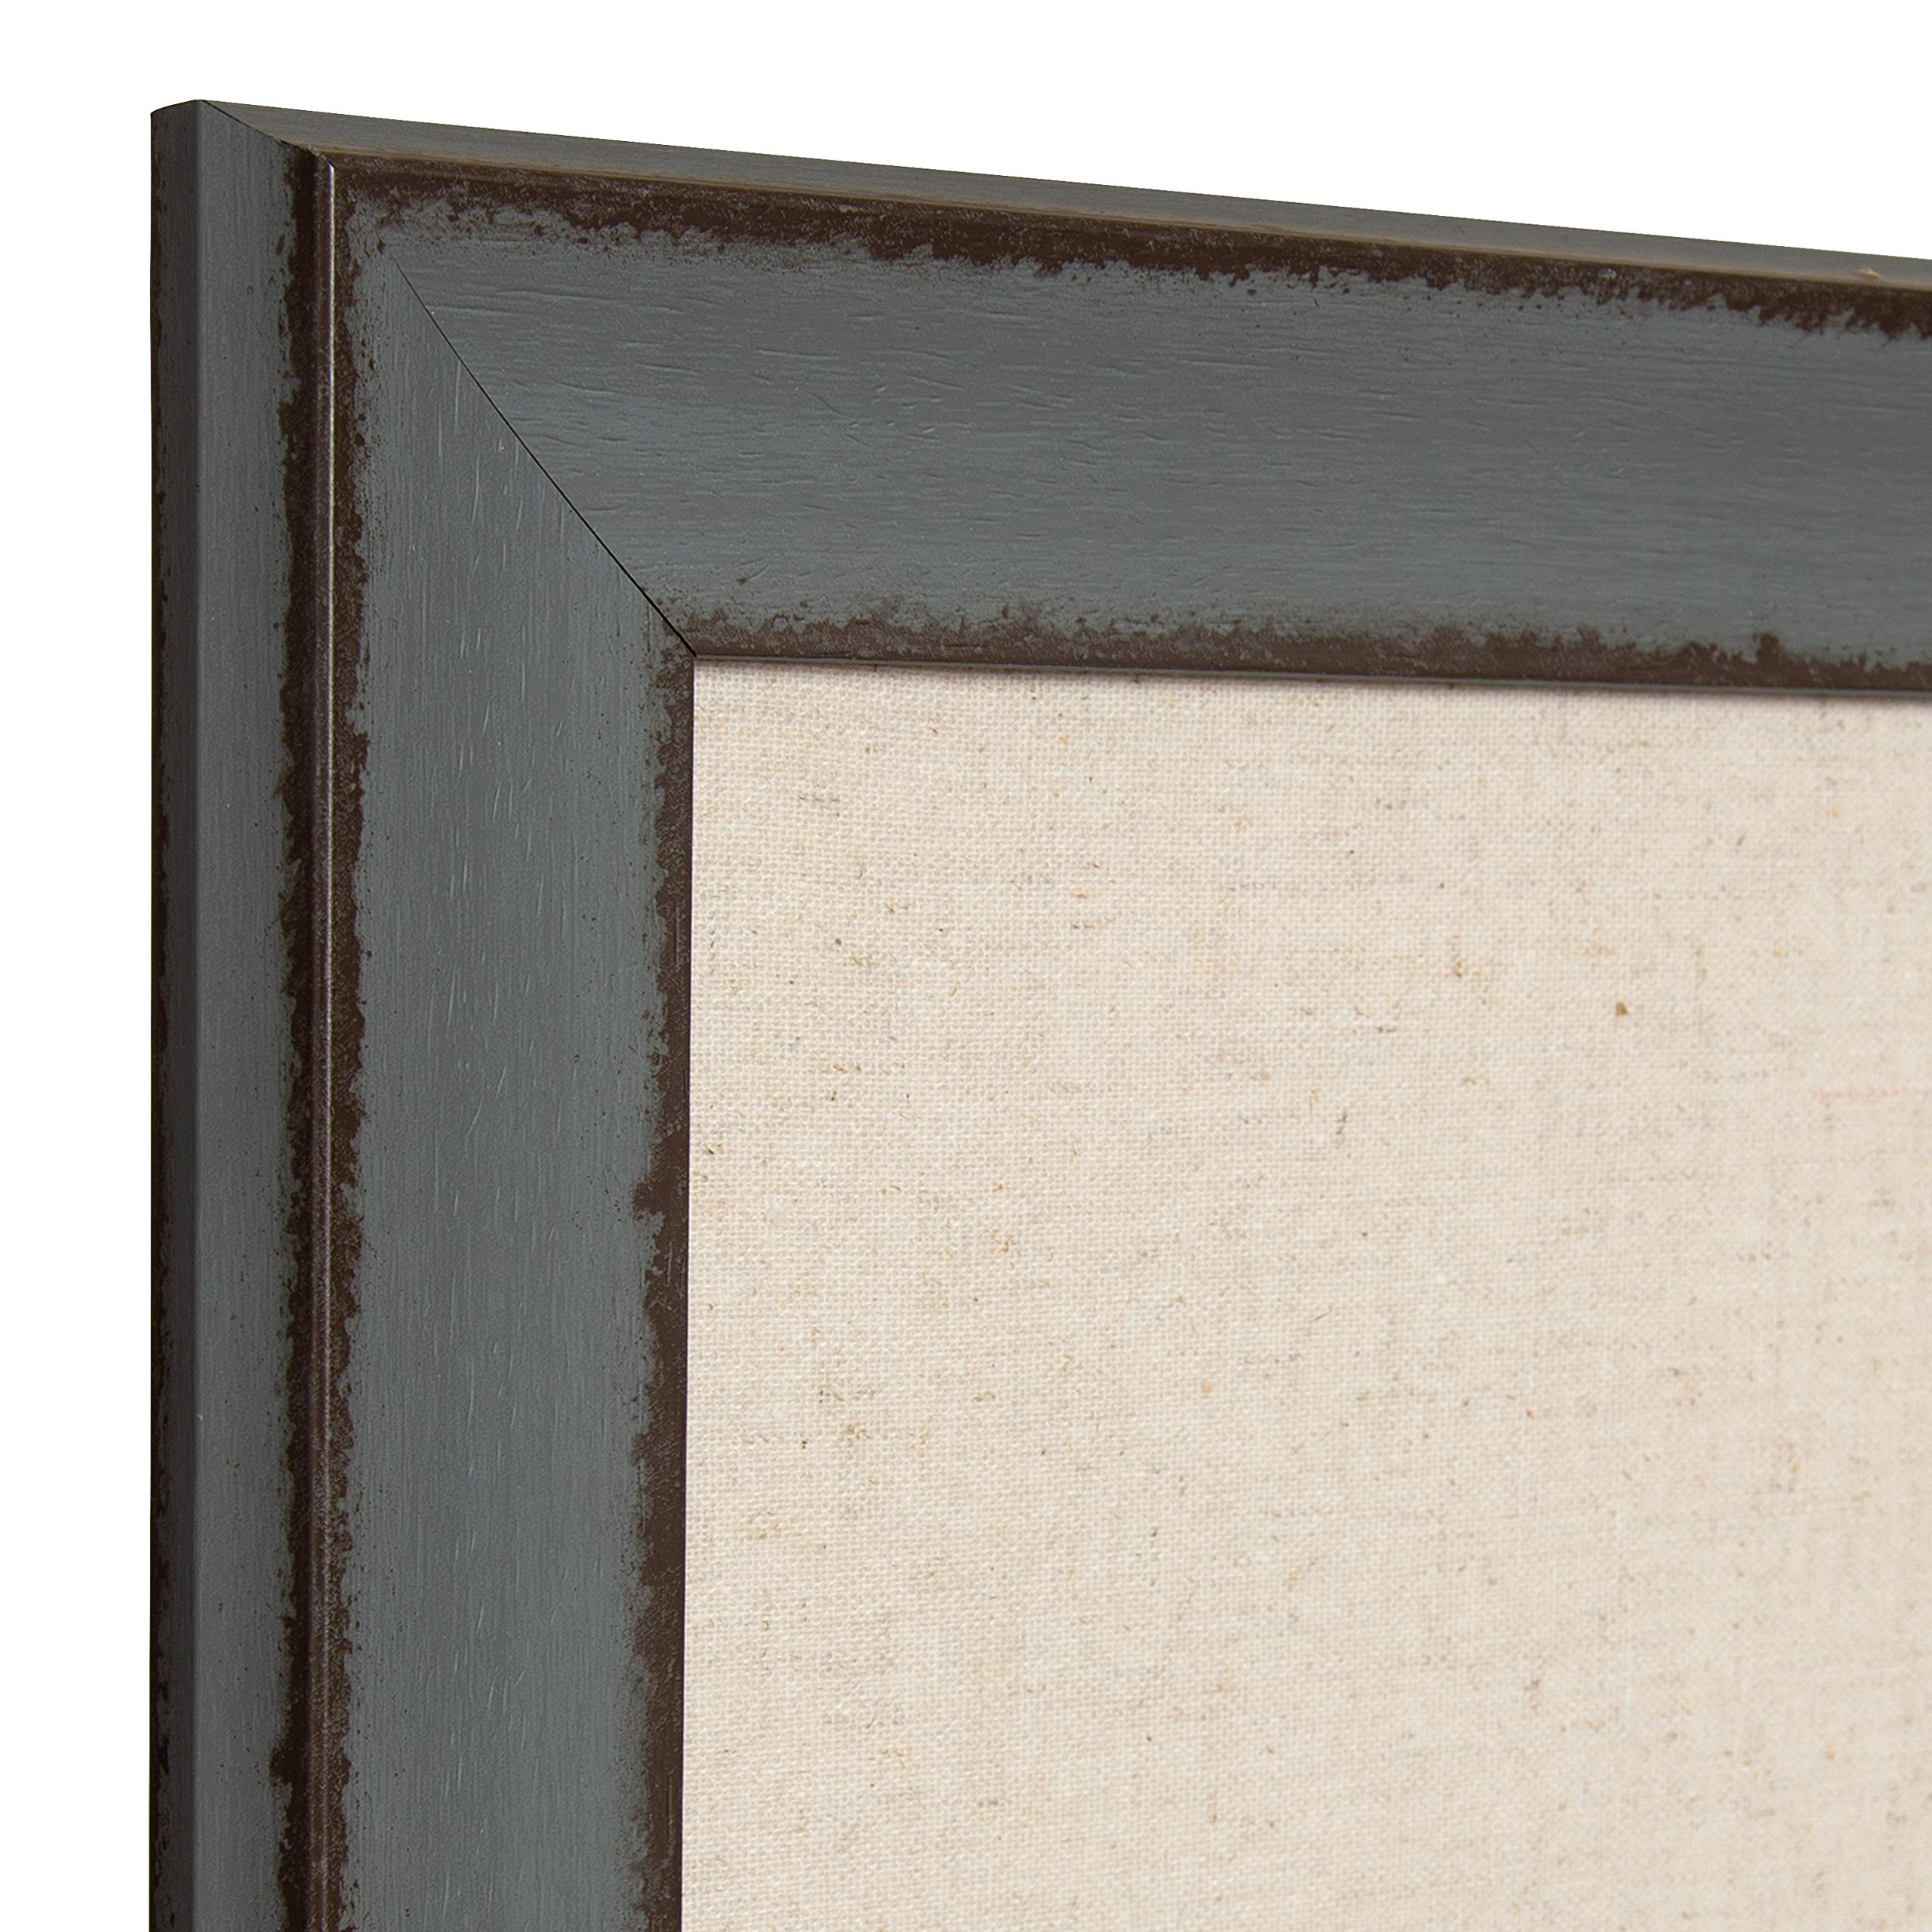 Kate and Laurel Kenwick Framed Linen Fabric Pinboard, 27x33, Gray Green by Kate and Laurel (Image #3)